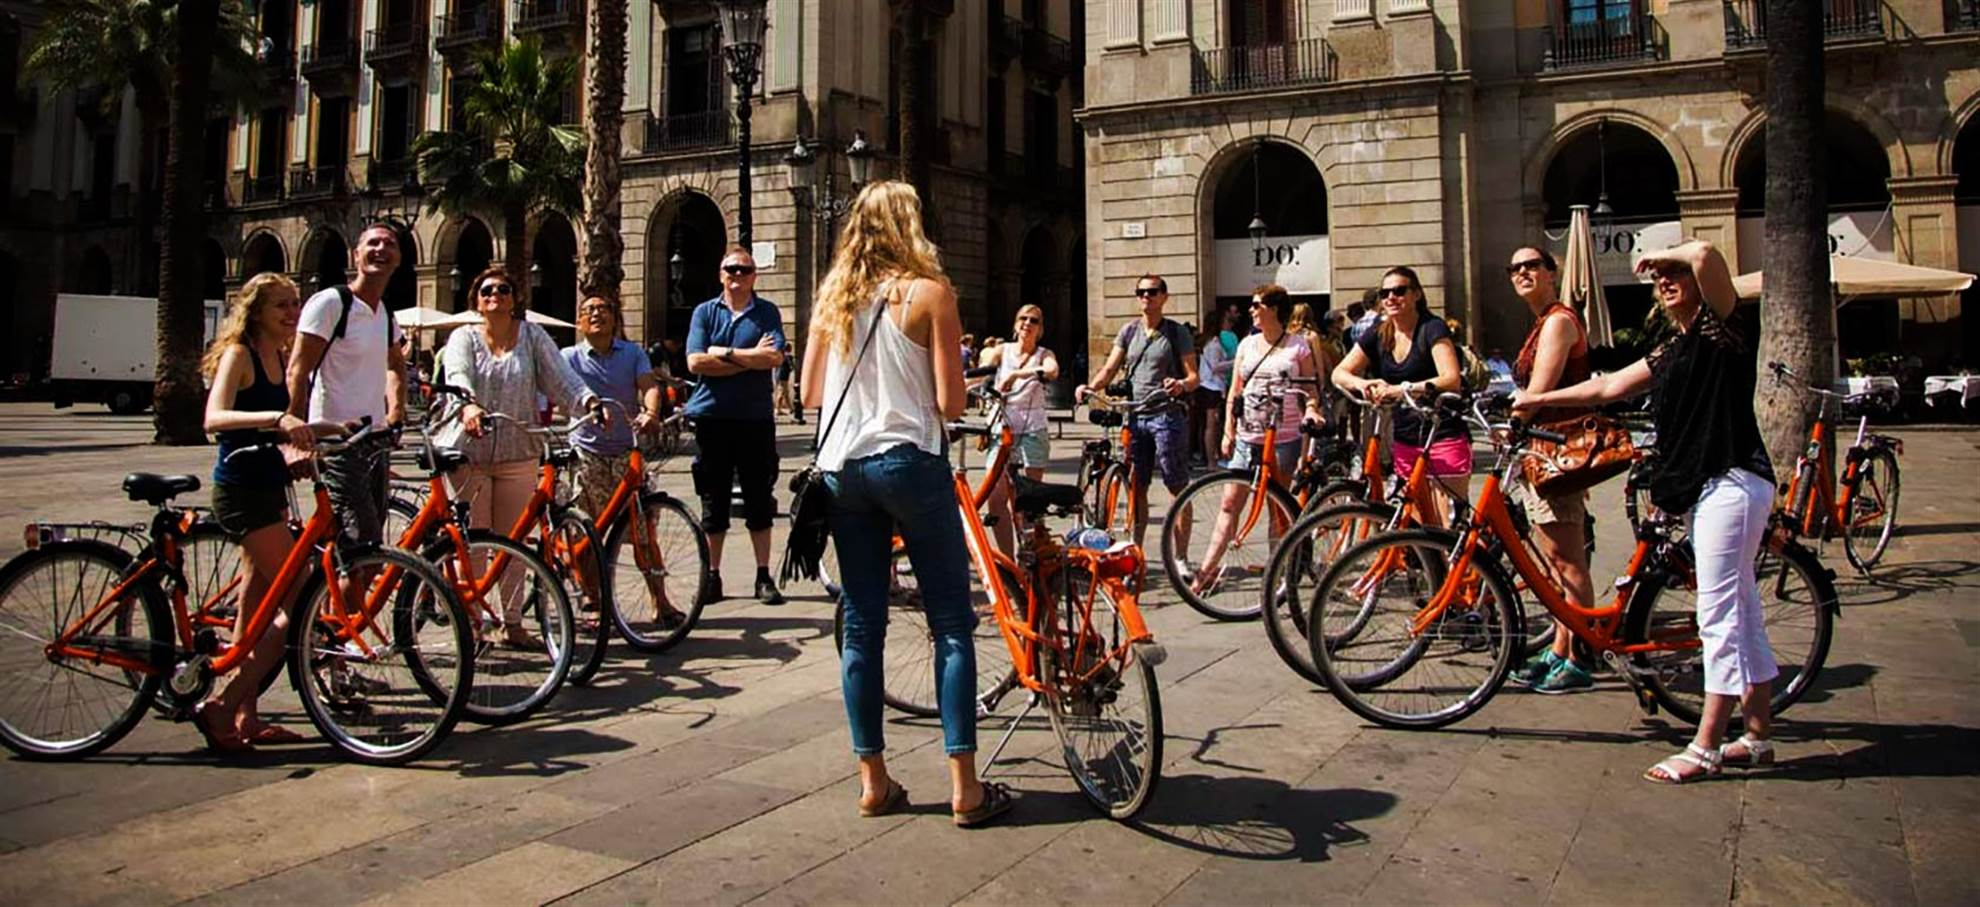 Gaudí Highlights tour in bicicletta